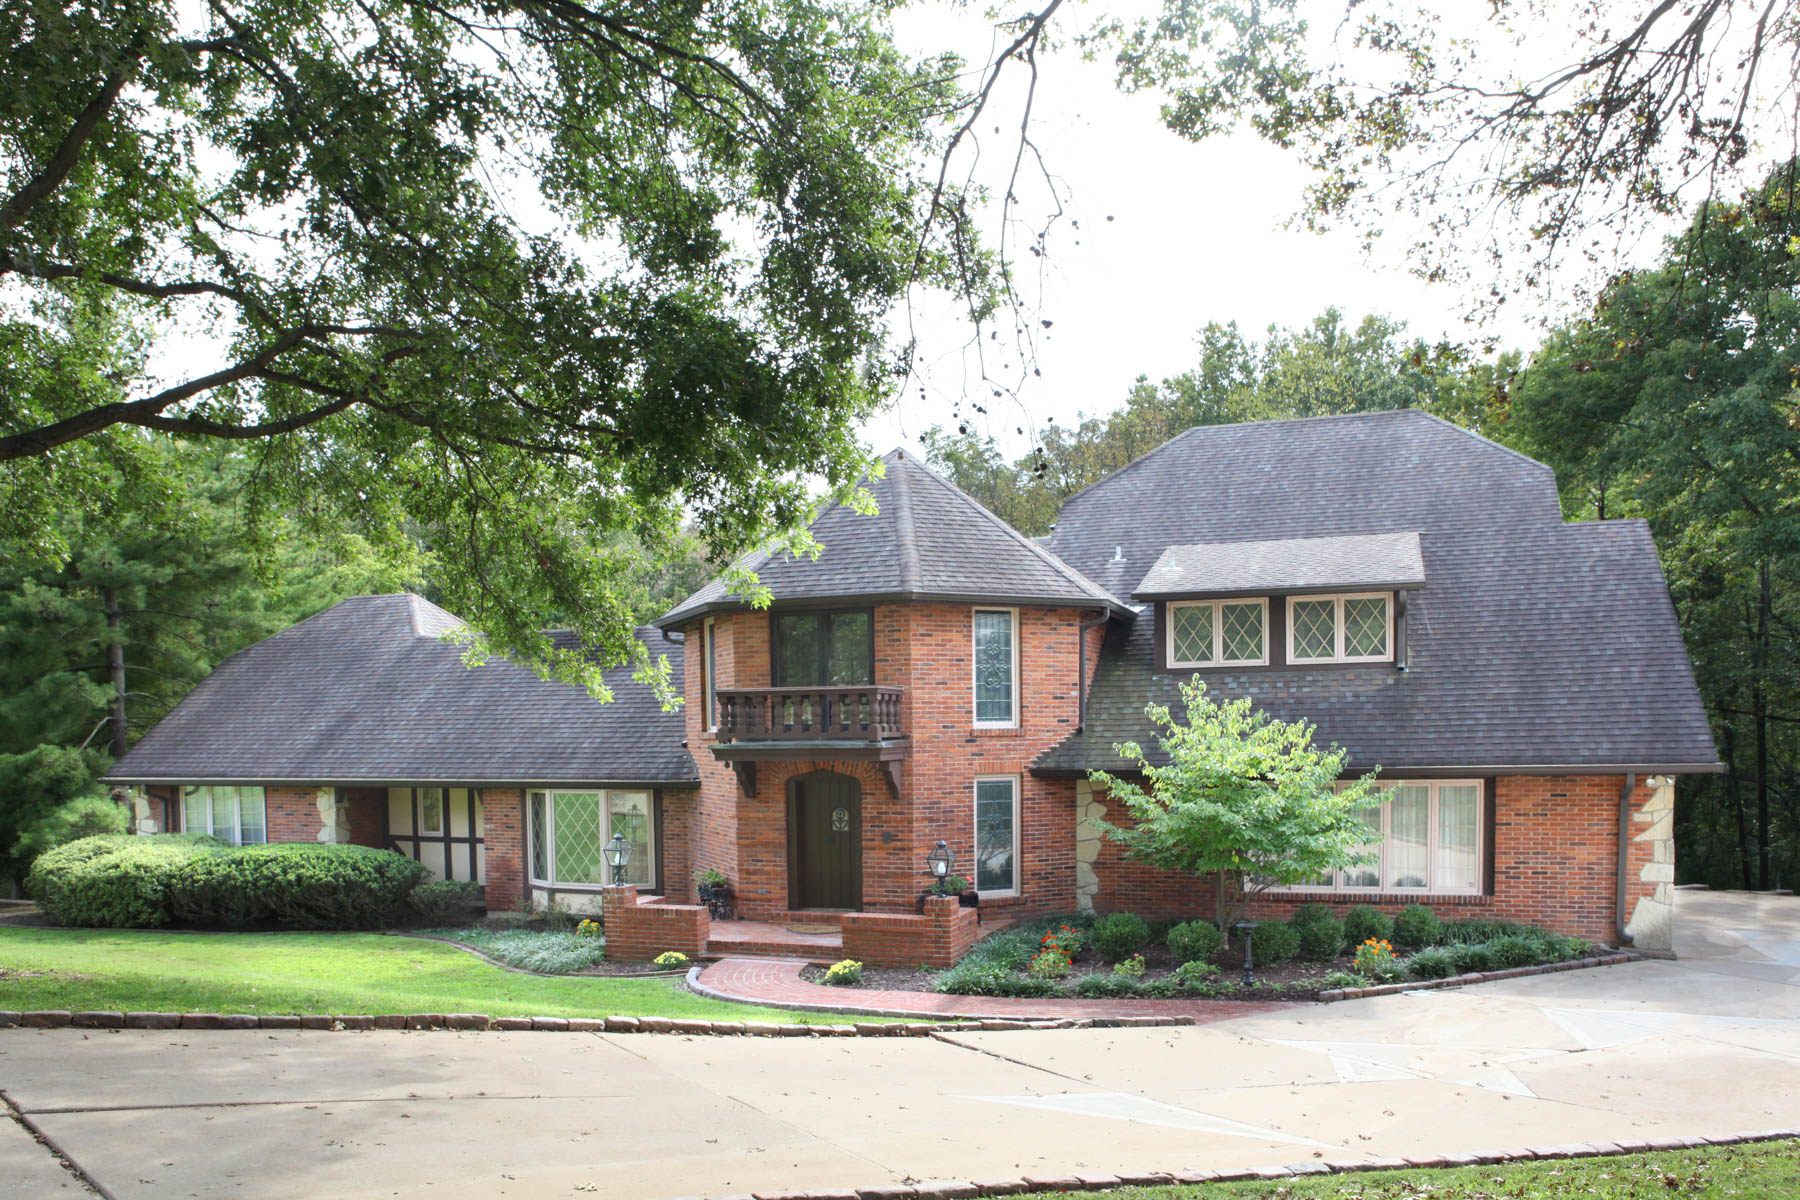 Single Family Home for Sale at Kings Glen 13596 Kings Glen Town And Country, Missouri, 63131 United States